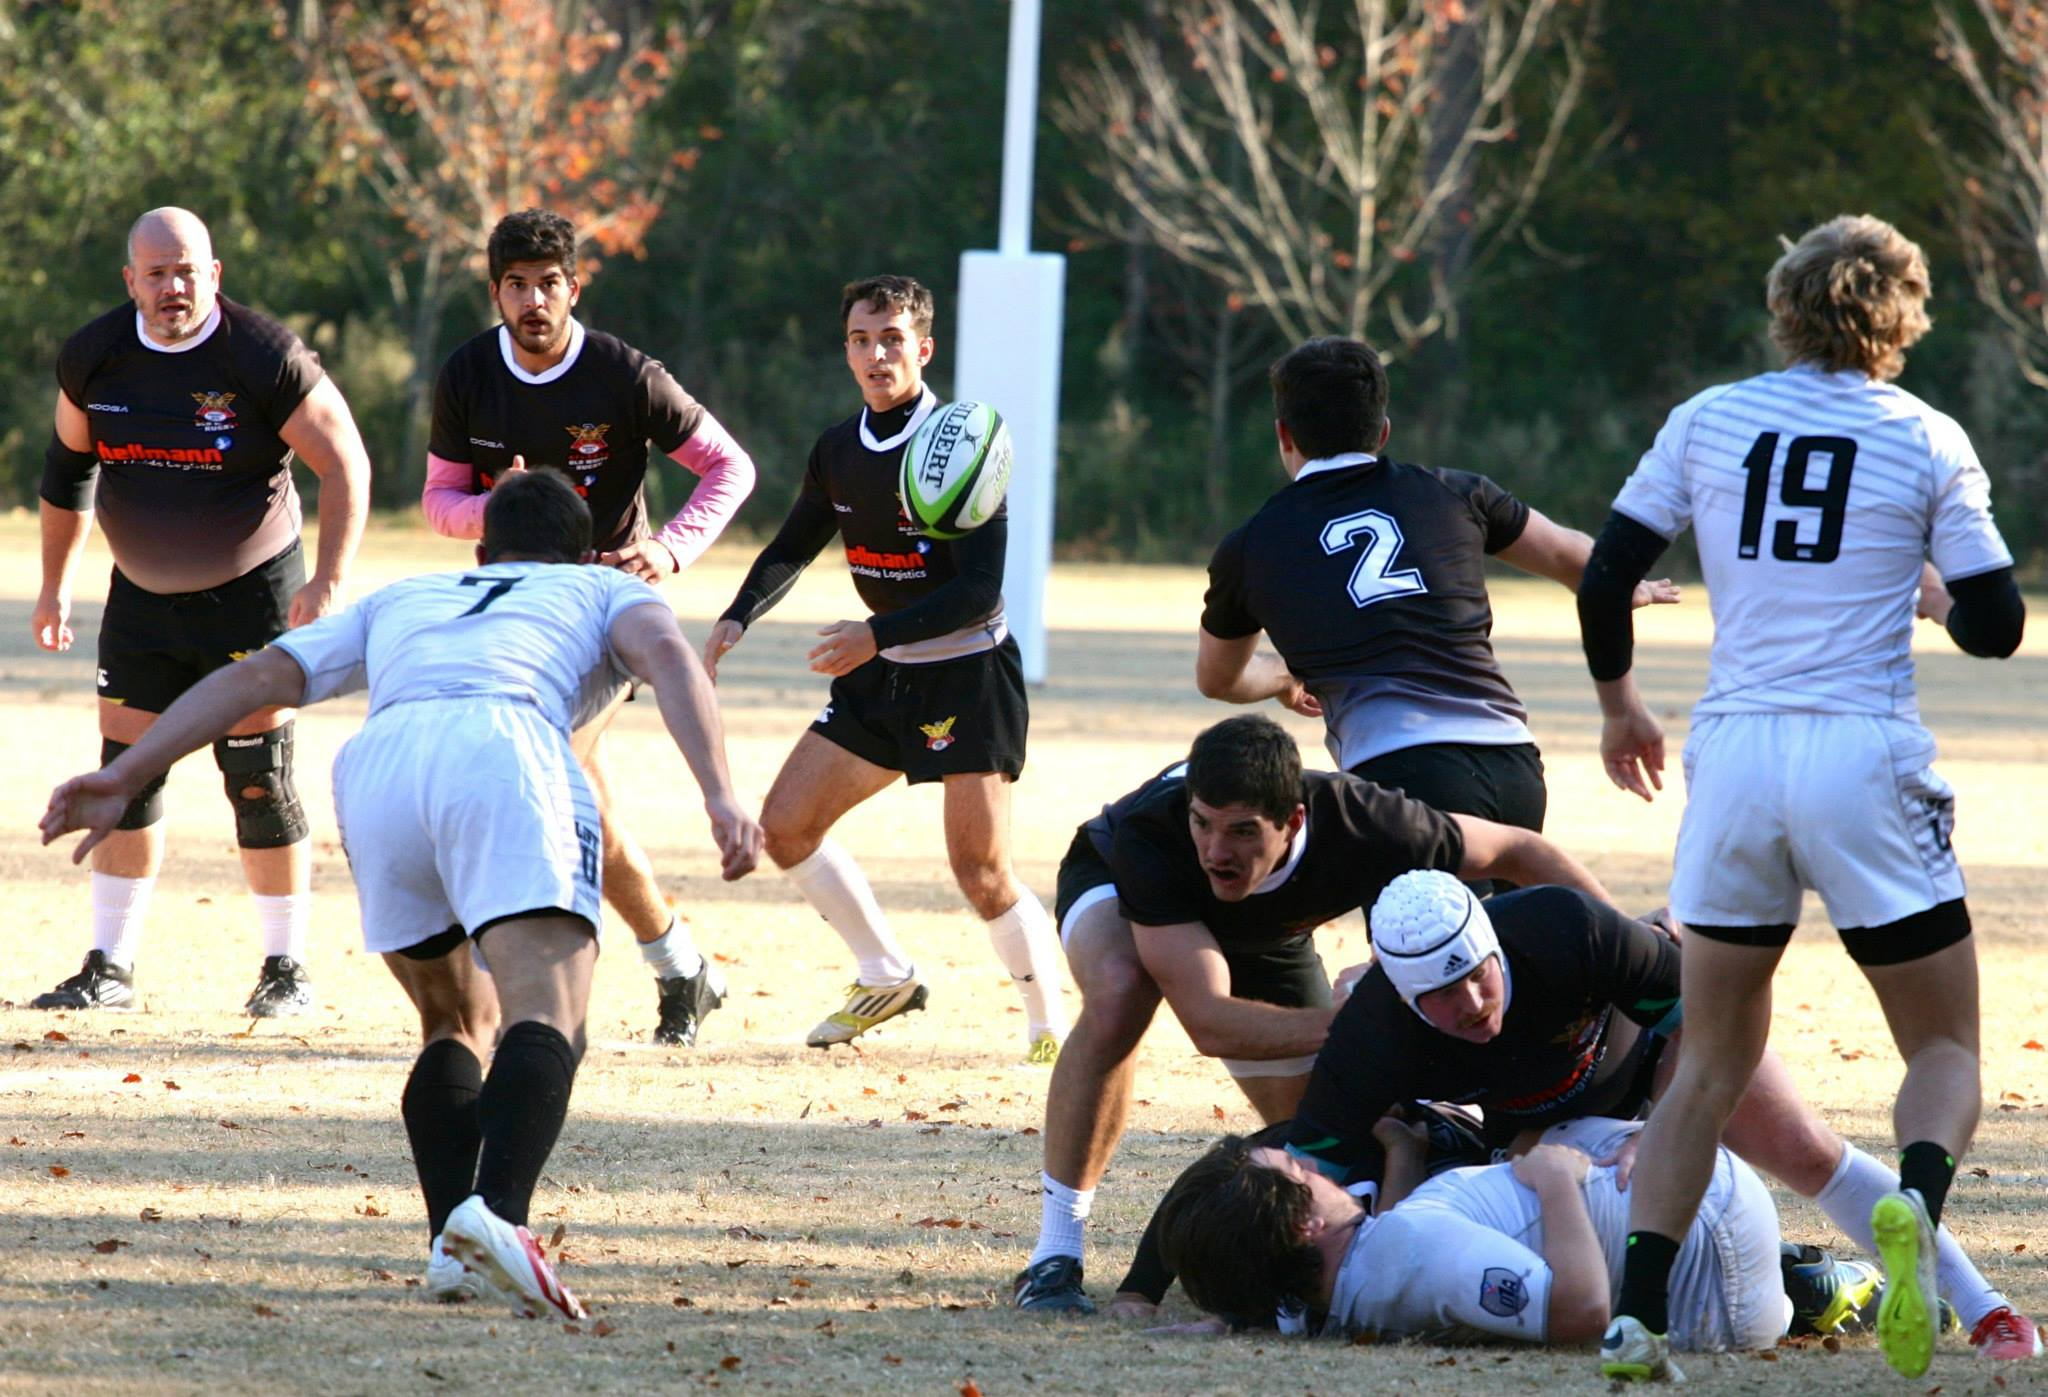 Photo by Atlanta Old White Rugby Club